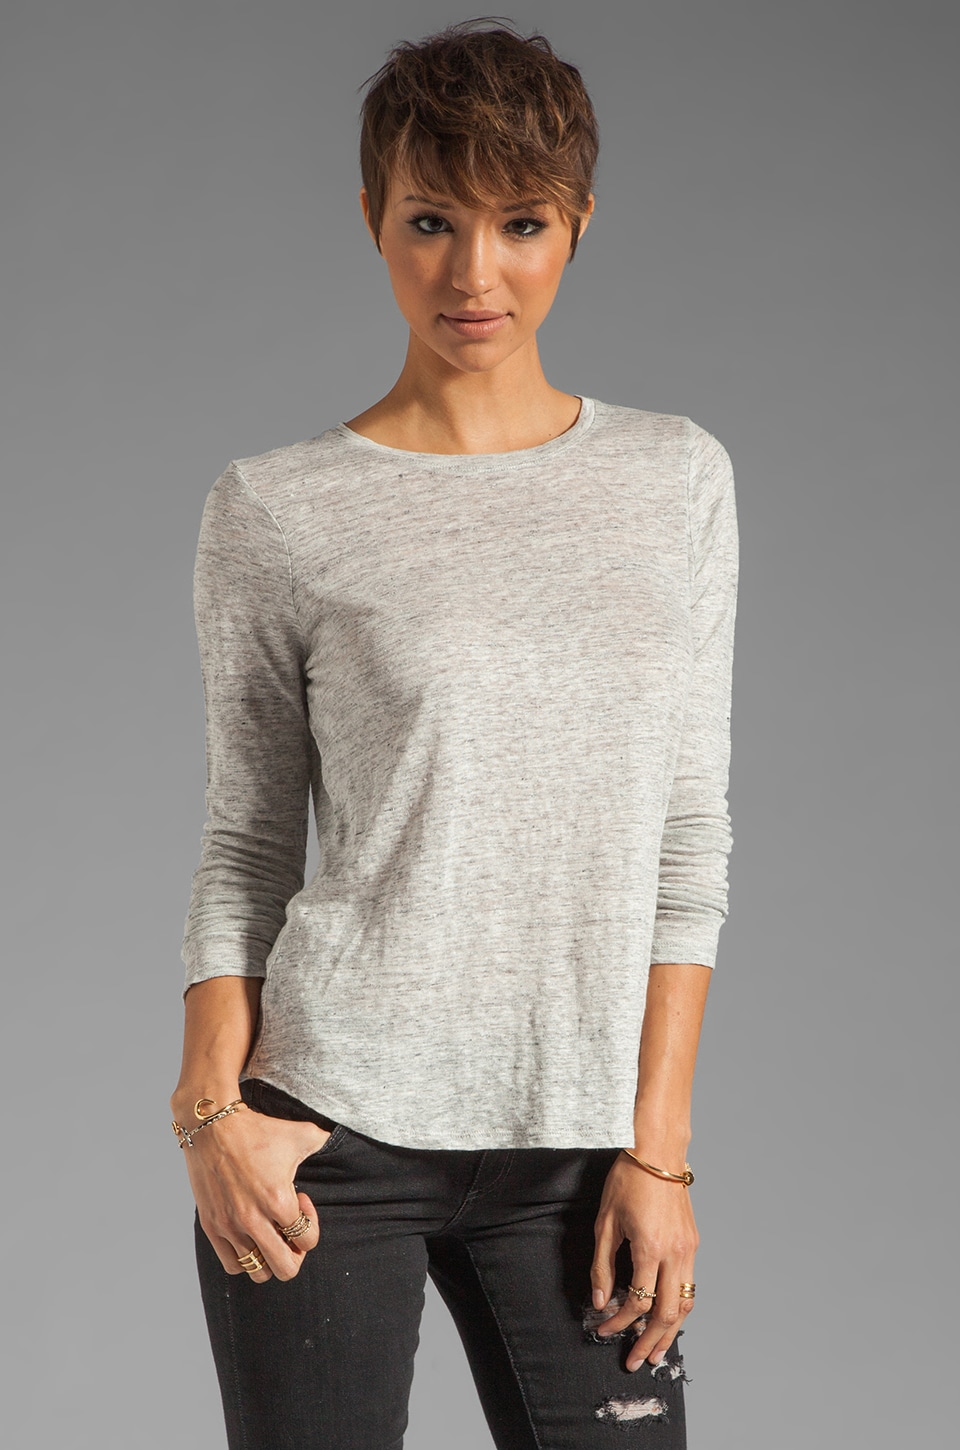 Vince Long Sleeve Shirt Tail Tee in Light Heather Grey